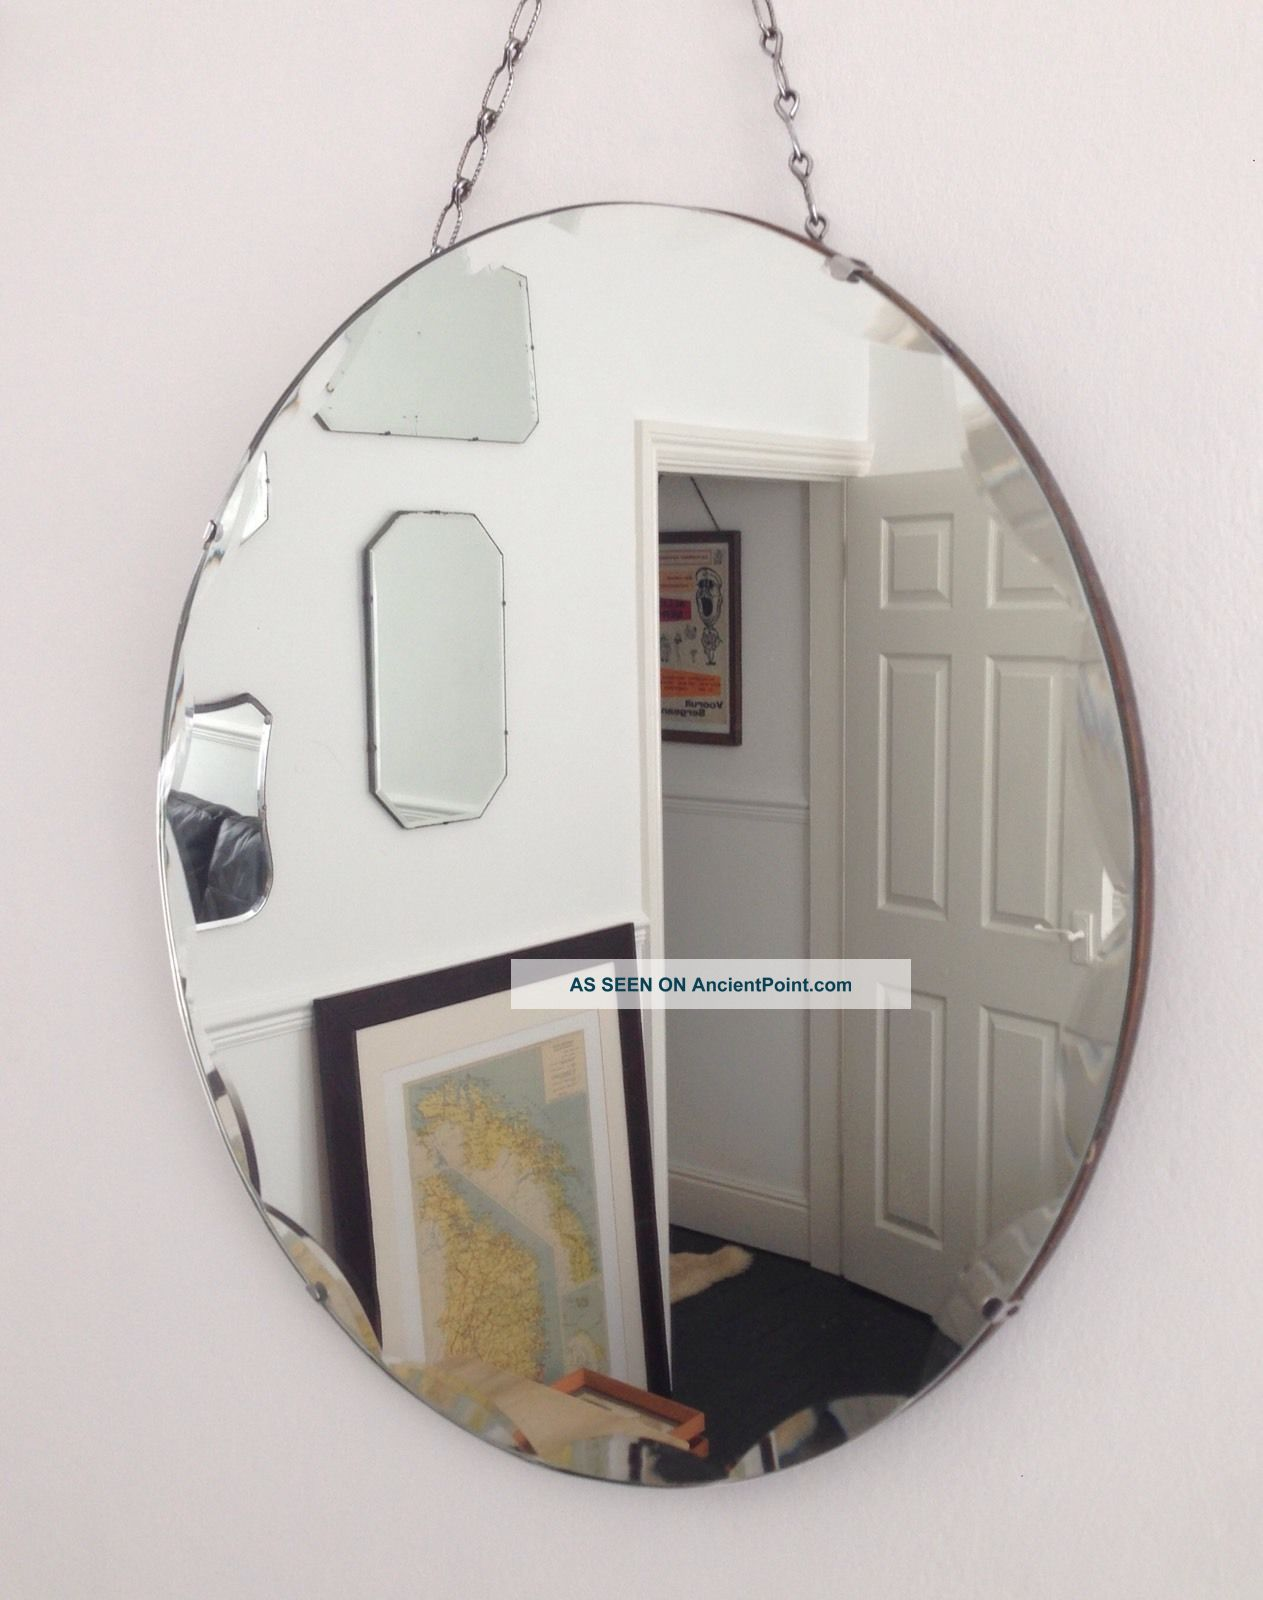 Vintage Art Deco Round Frameless Beveled Scalloped Edge Wall Mirror With Chain